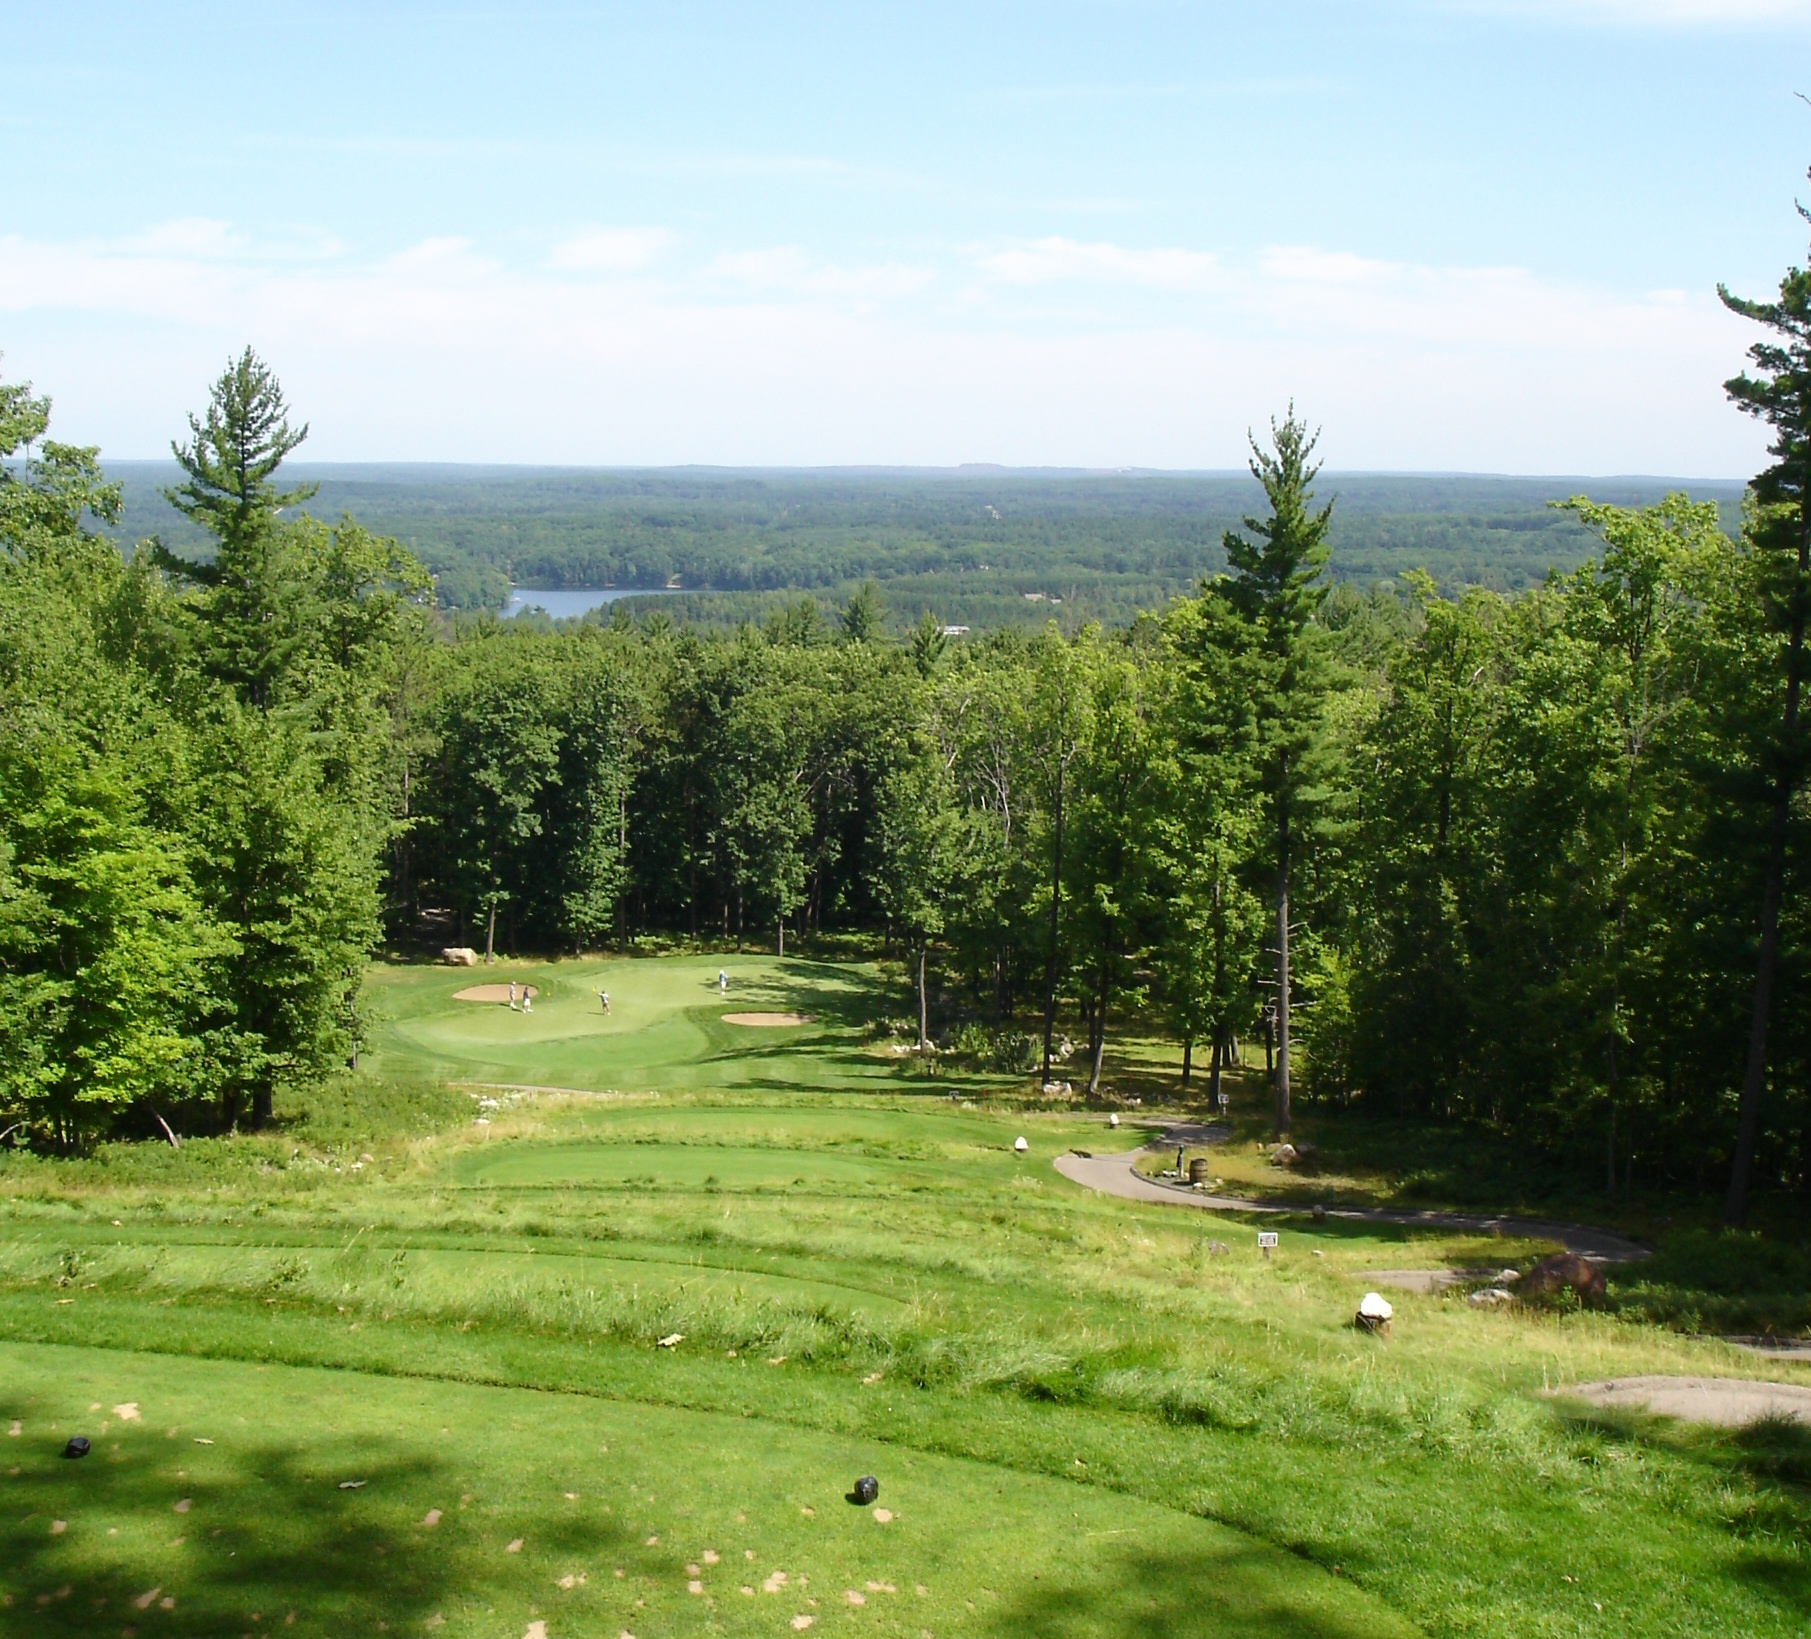 17th at Timberstone, Iron Mtn, MI.  One of the top 20 courses in the country.  Look closely, - the green mirrors the shape of the lake in the background.